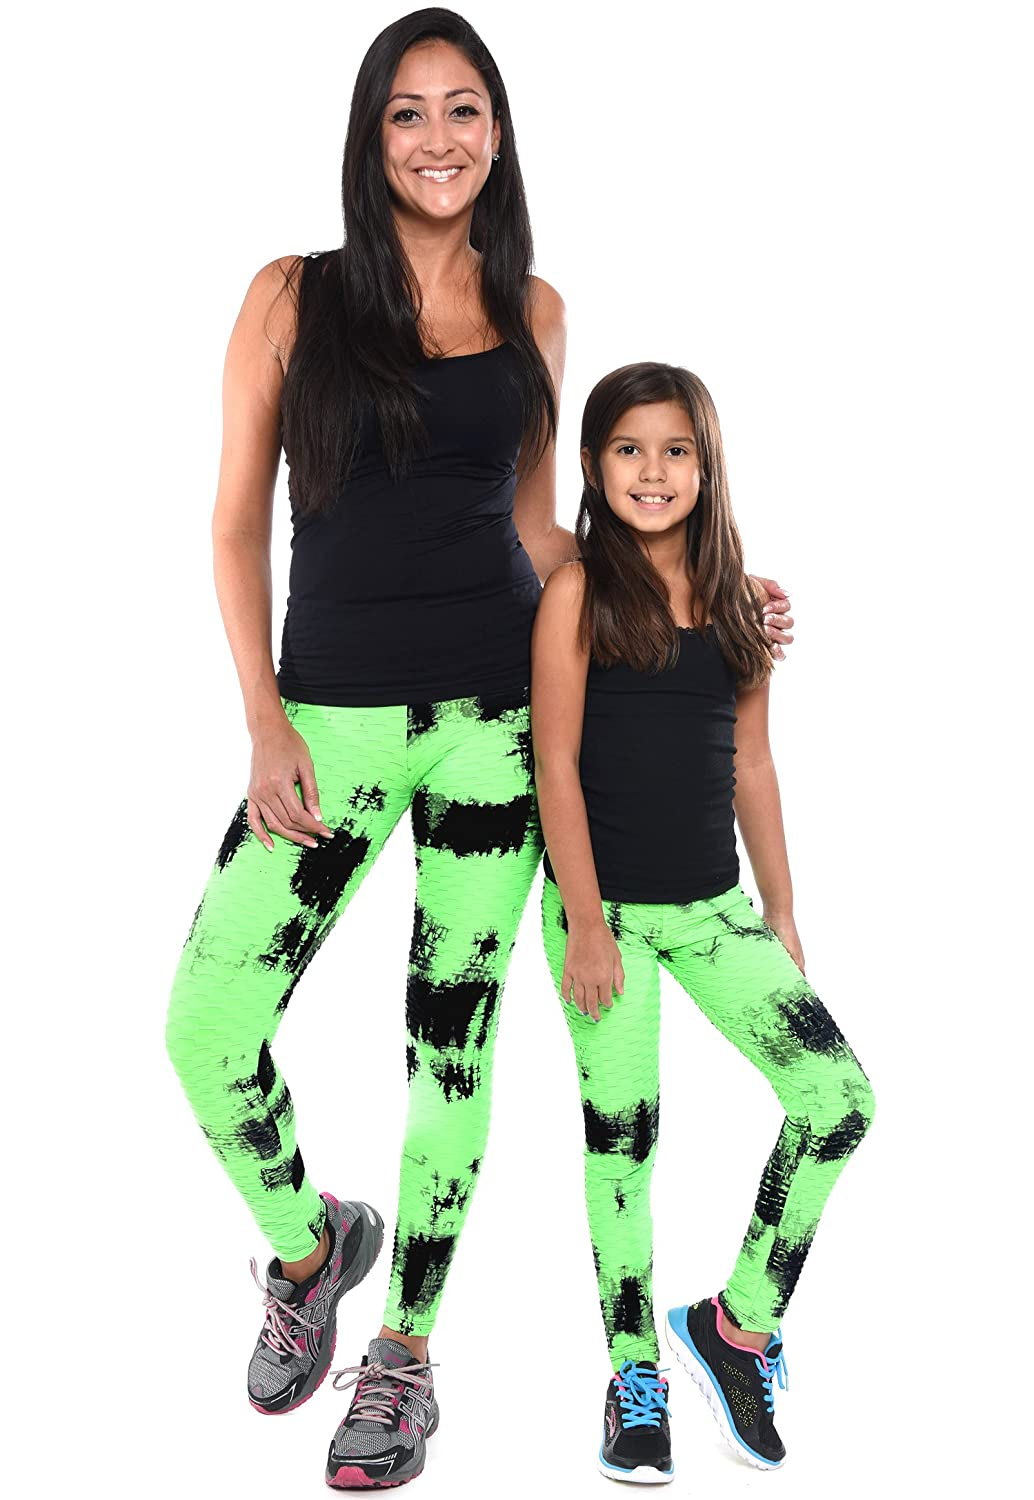 c787e21c330 Amazon.com  Mommy and Me Textured Leggings Pants Matching Outfit Set (Women-Toddler-Little  Kids-Big Kids) (Kids S M (Fits Ages 2-6)